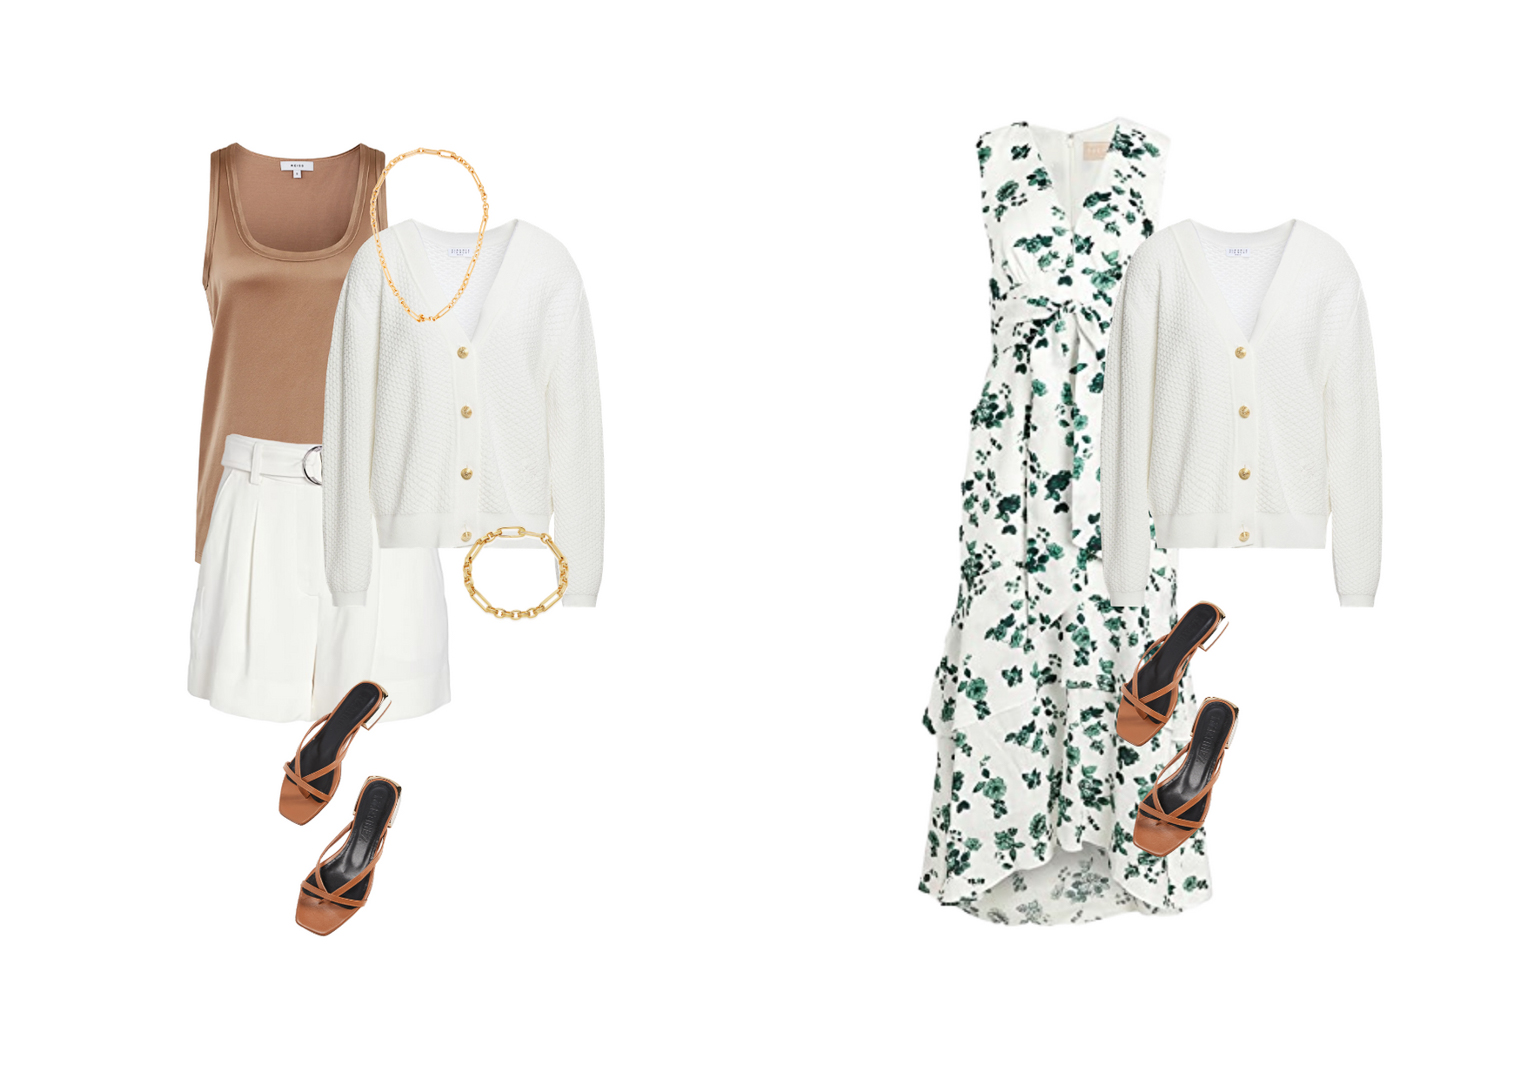 Summer capsule wardrobe for the city inspiration